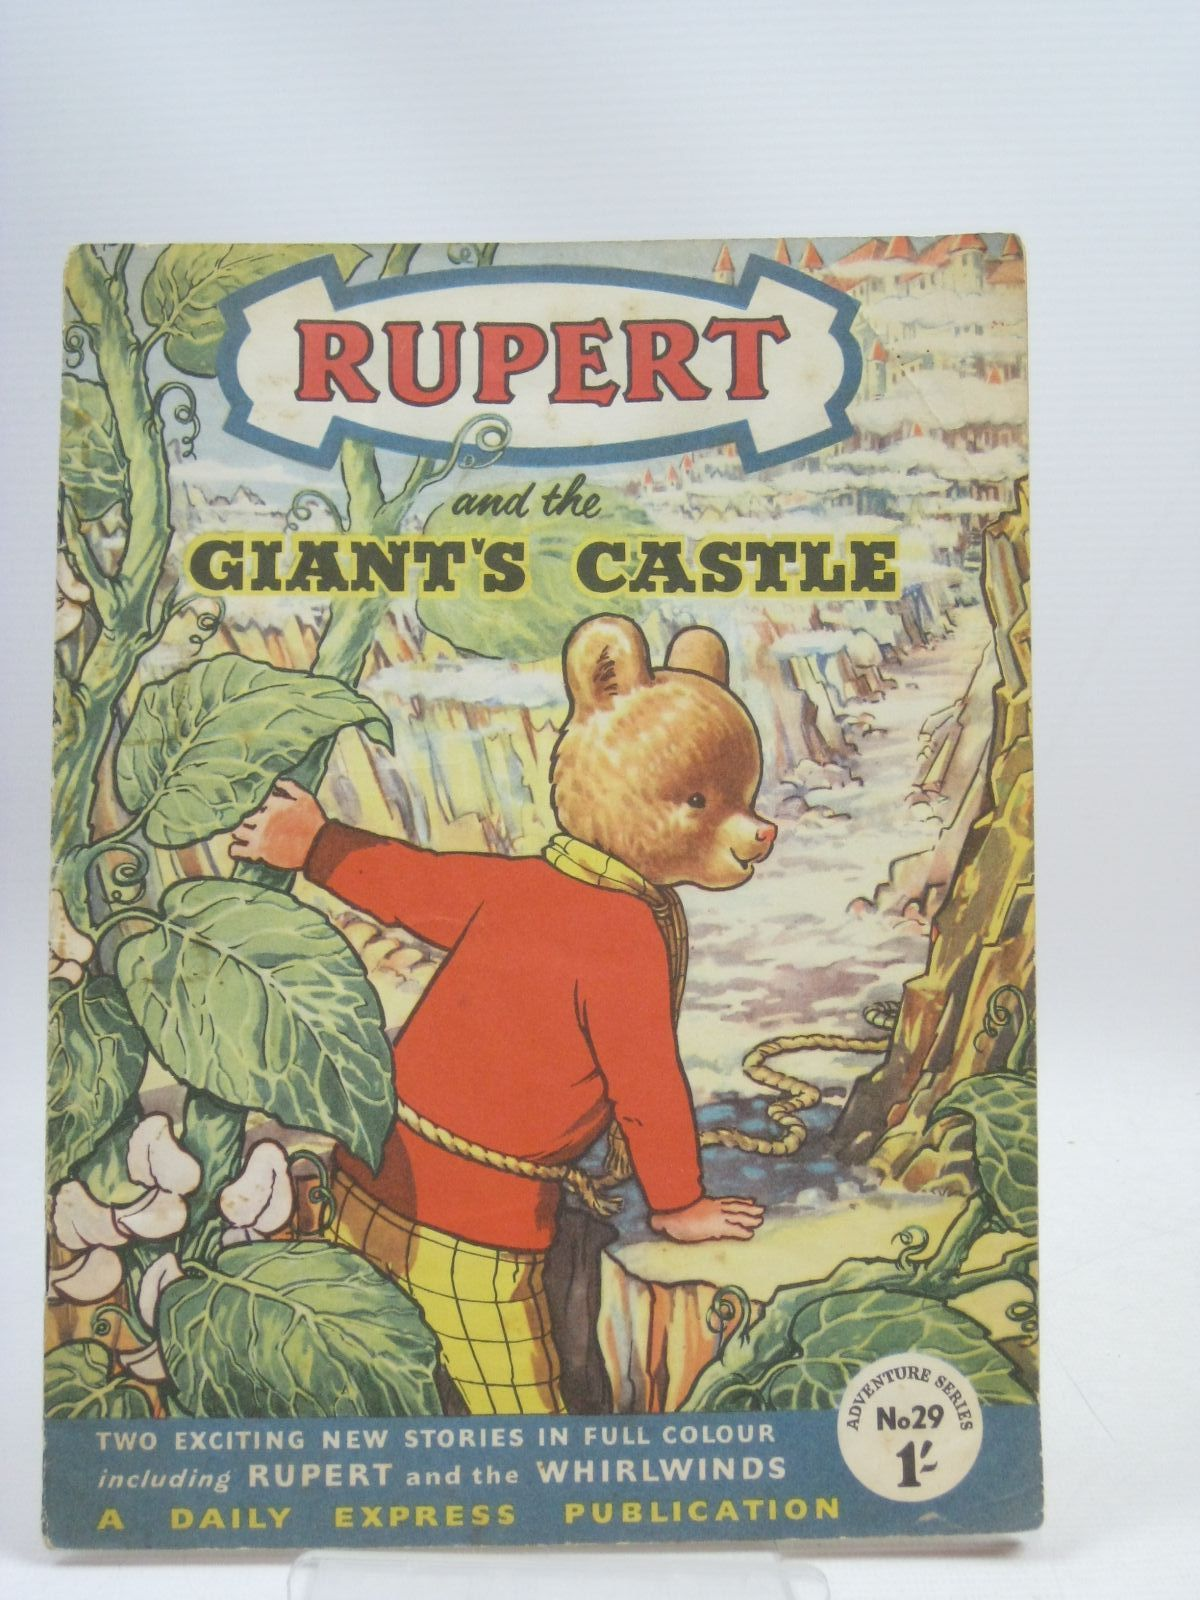 Photo of RUPERT ADVENTURE SERIES No. 29 - RUPERT AND THE GIANT'S CASTLE written by Bestall, Alfred published by Daily Express (STOCK CODE: 1315985)  for sale by Stella & Rose's Books